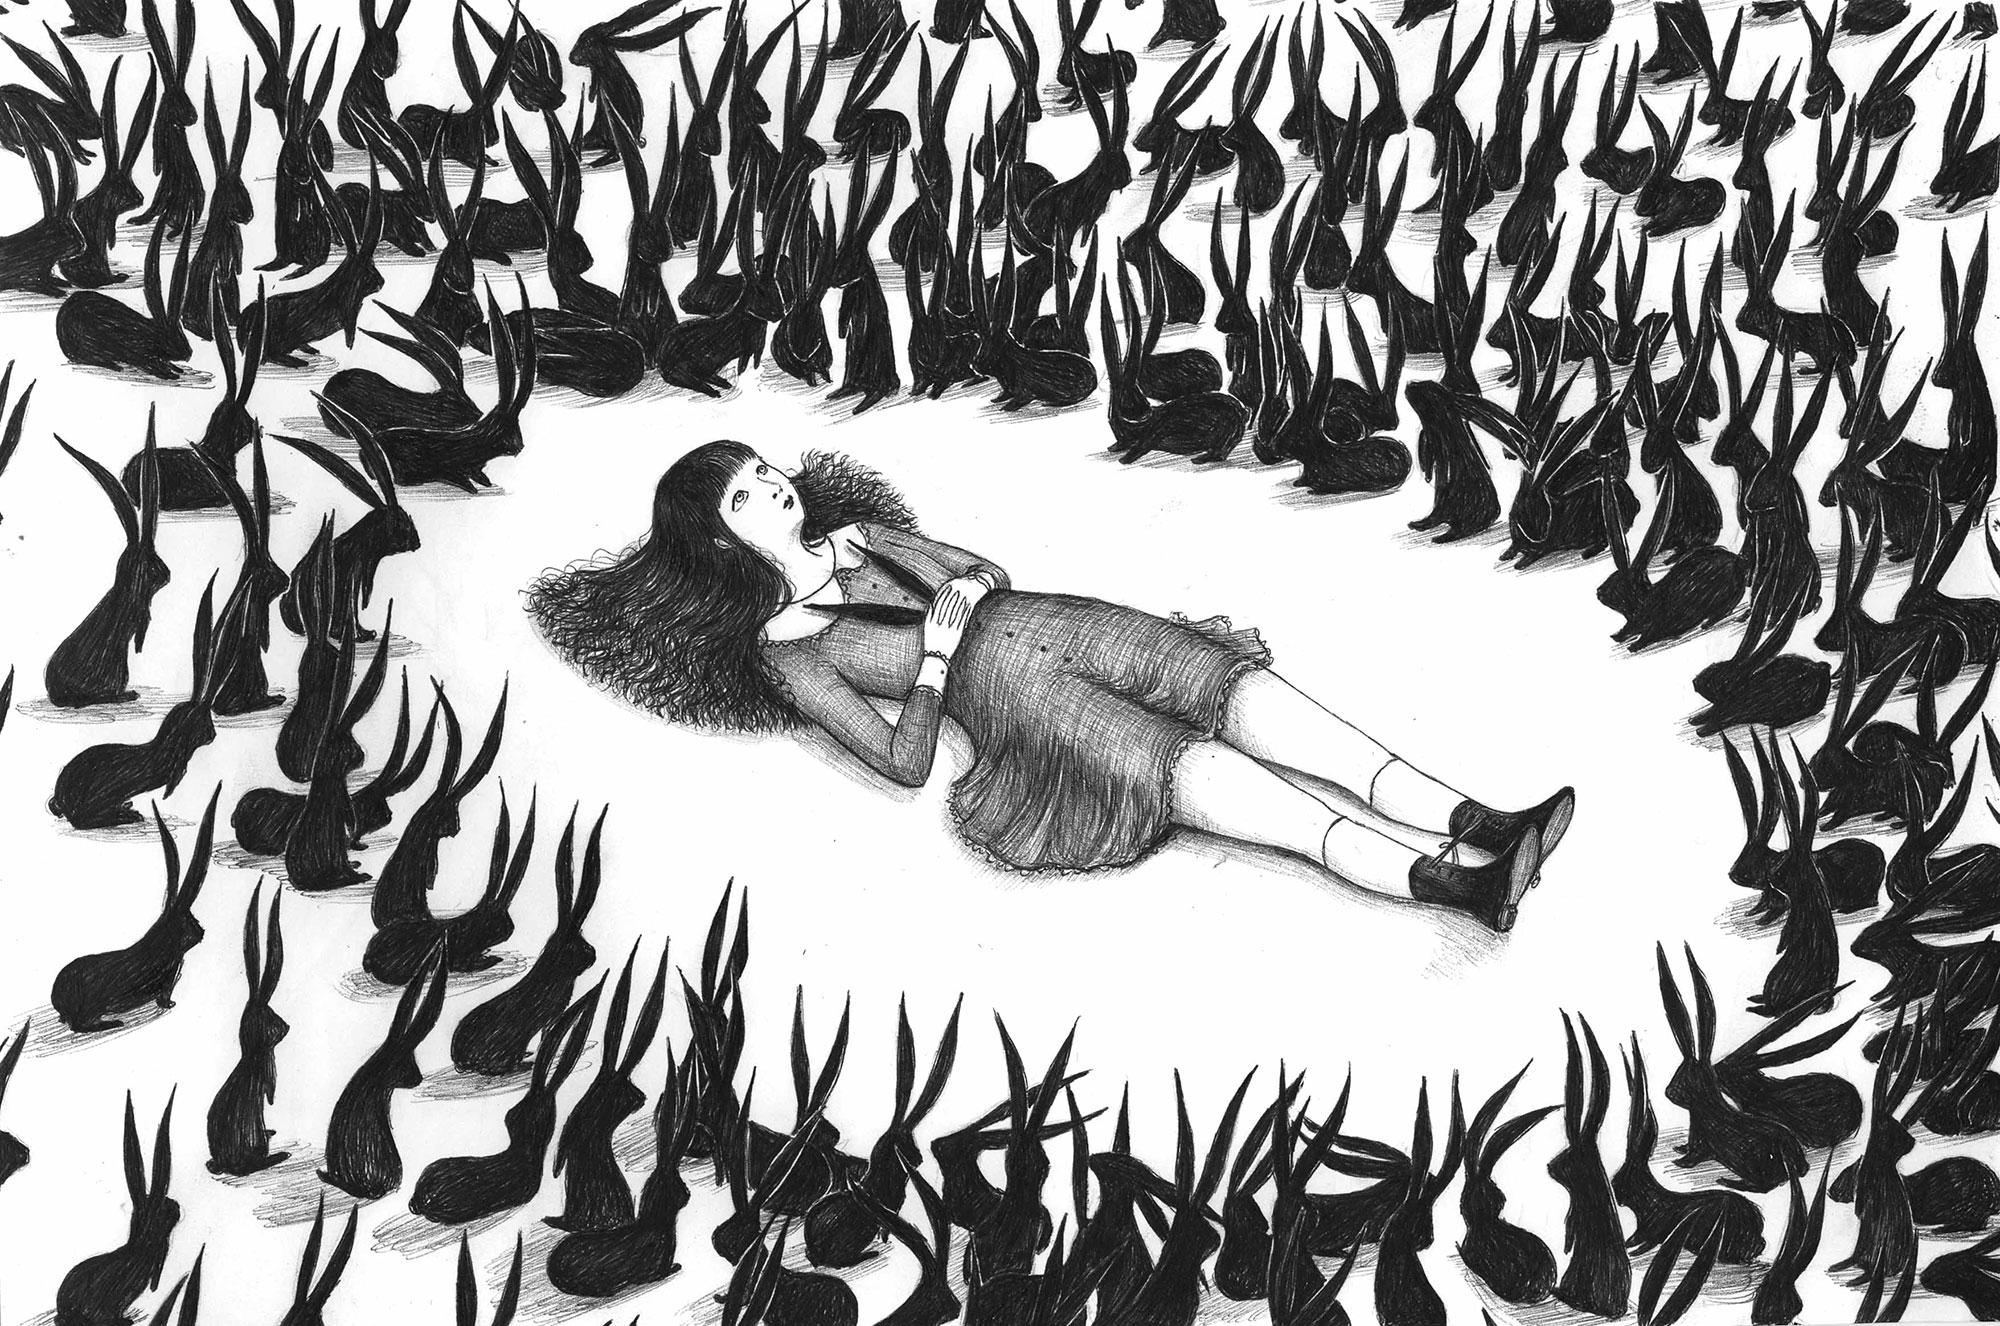 Morbid and Mysterious Illustrations by Virginia Mori